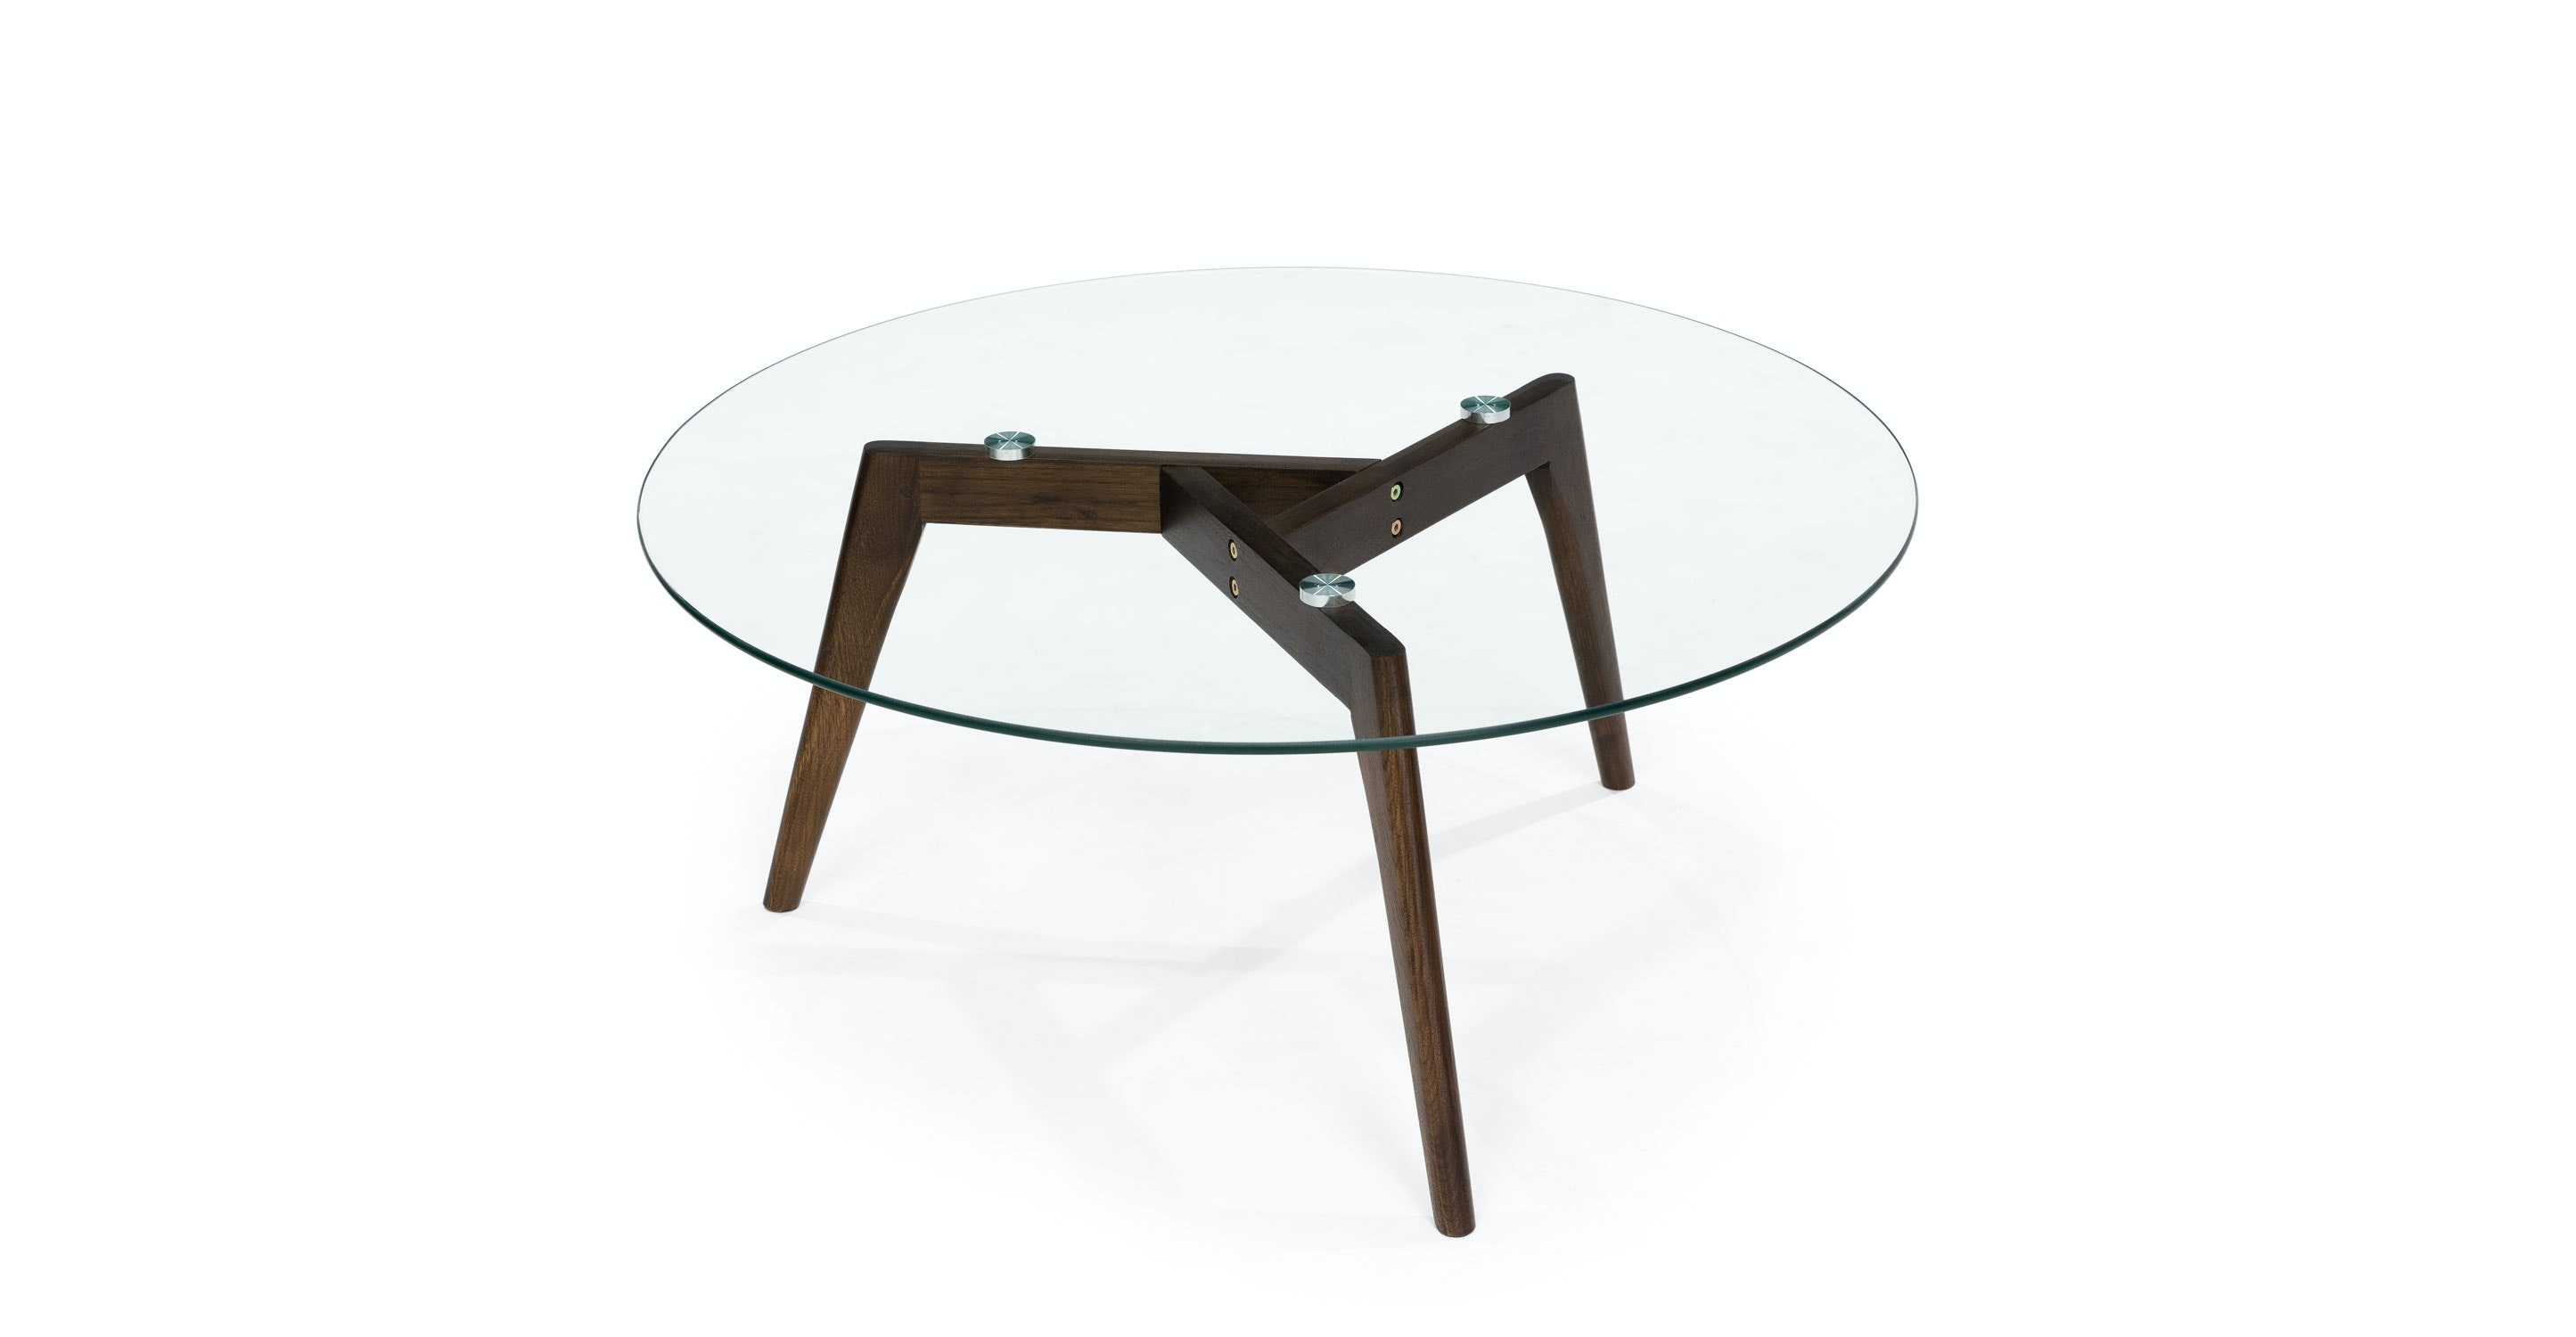 Shop Clarus Walnut Coffee Table from Article on Openhaus